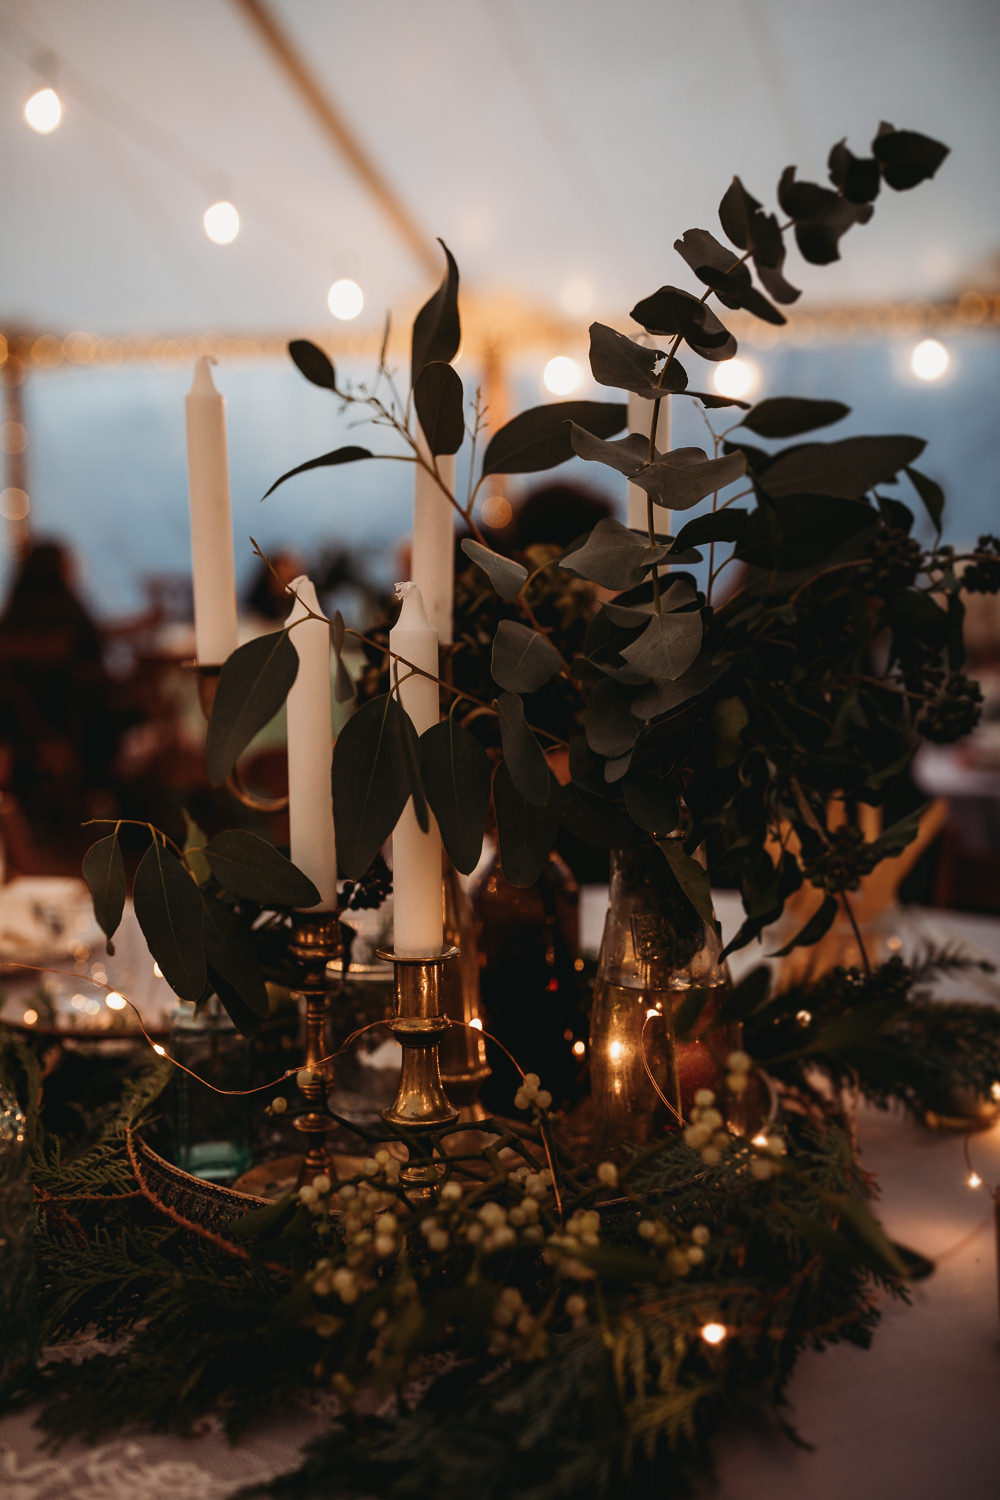 Centrepiece Decor Greenery Foliage Candles Brass Decor Decoration Christmas Marquee Wedding Thyme Lane Photography